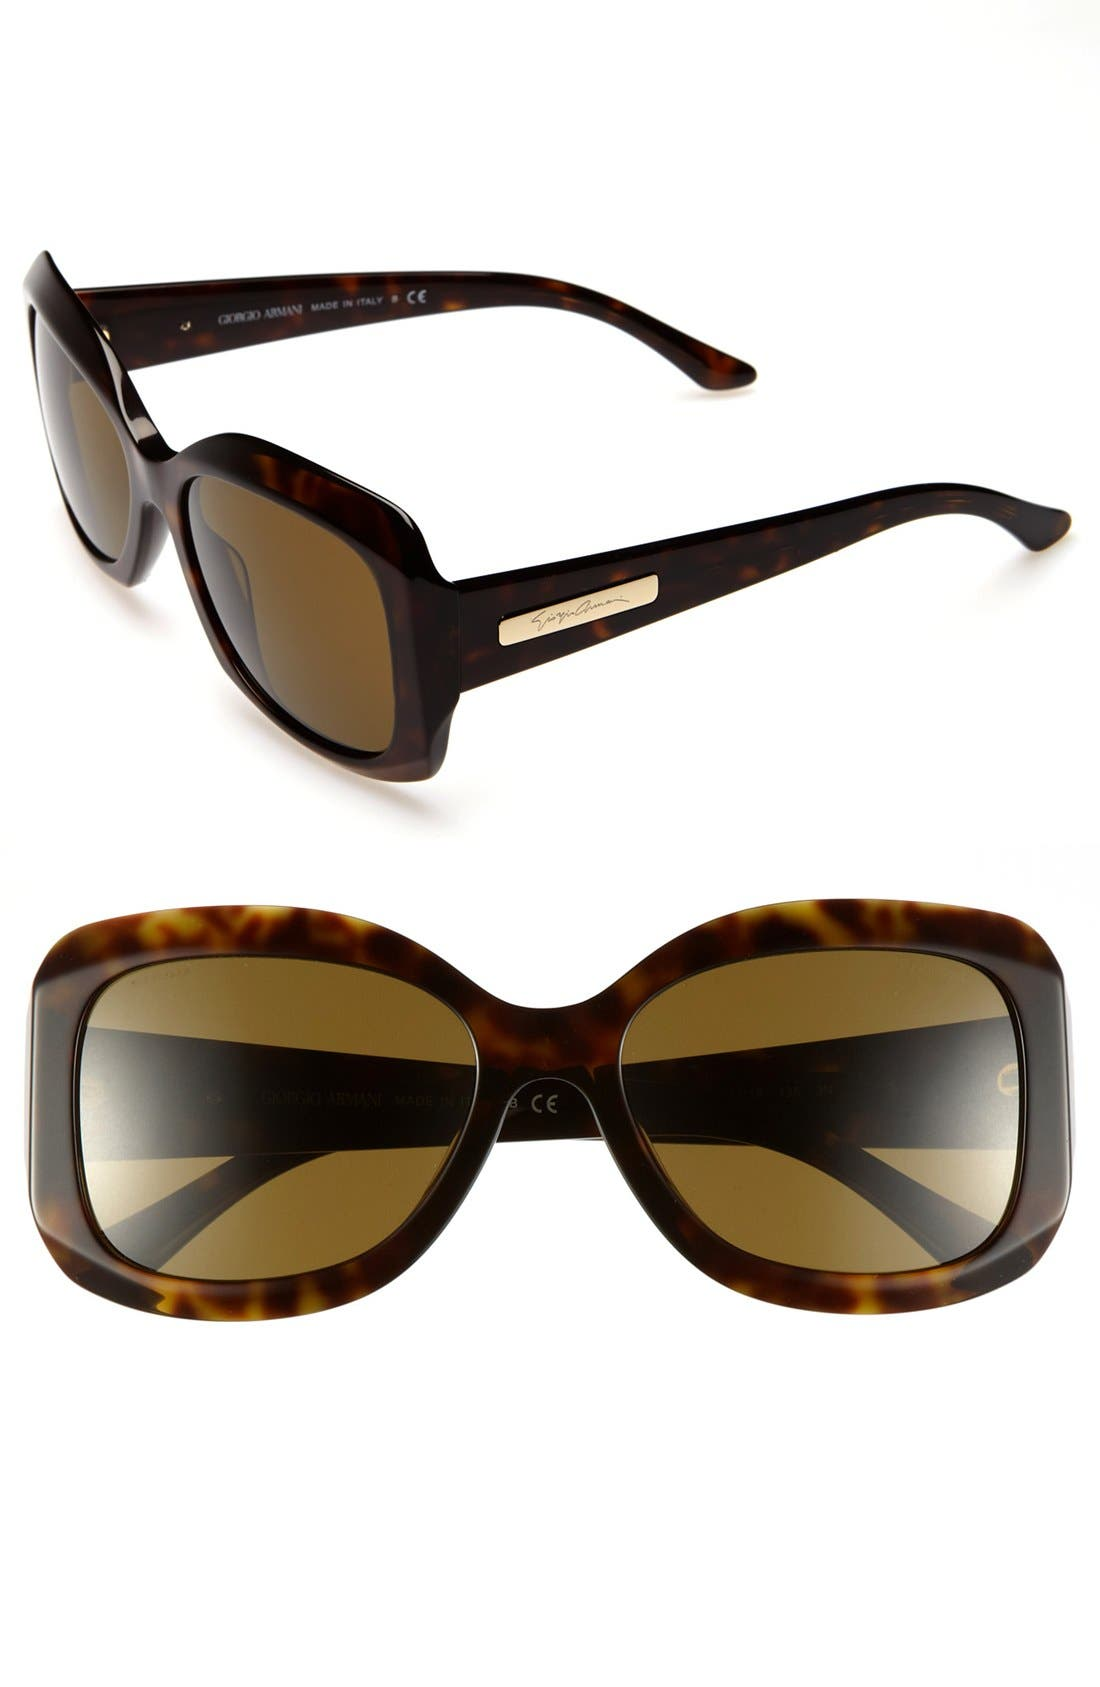 Main Image - Giorgio Armani 55mm Sunglasses